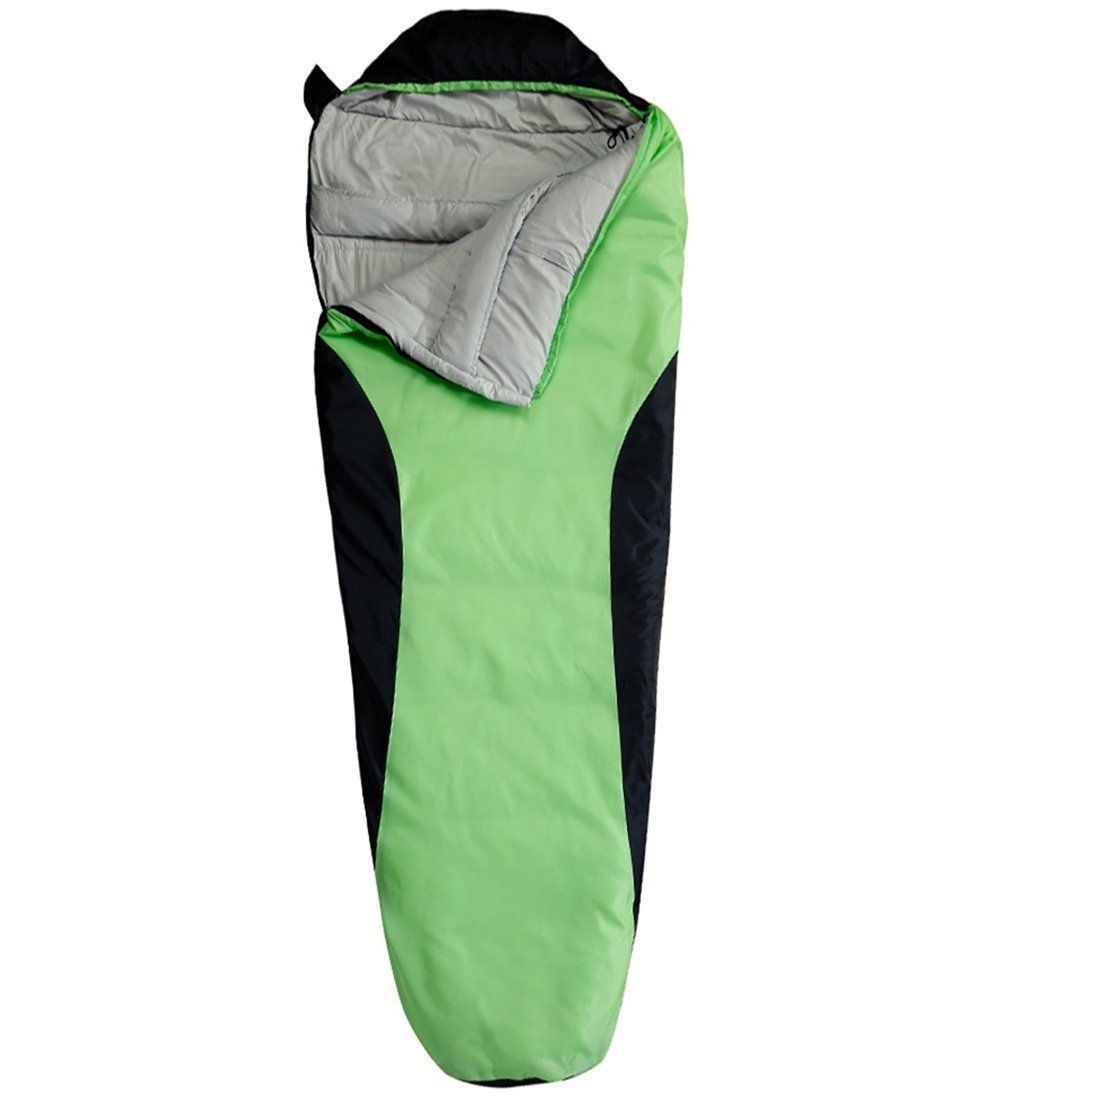 Zipperless Sleeping Bag